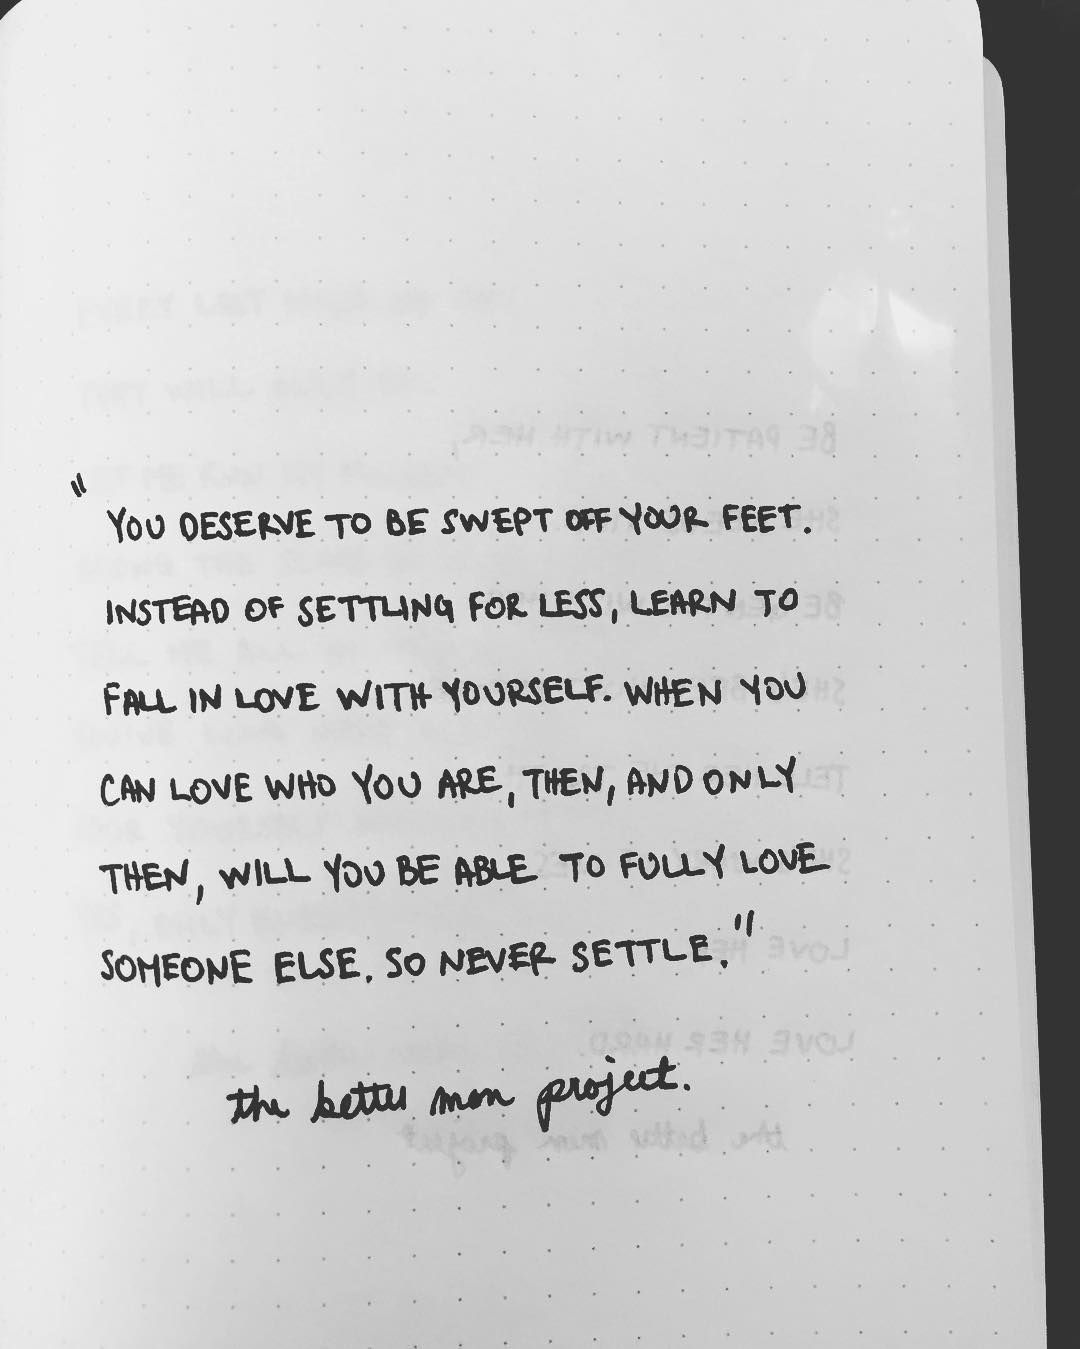 What You Deserve With Images You Deserve Quotes You Deserve